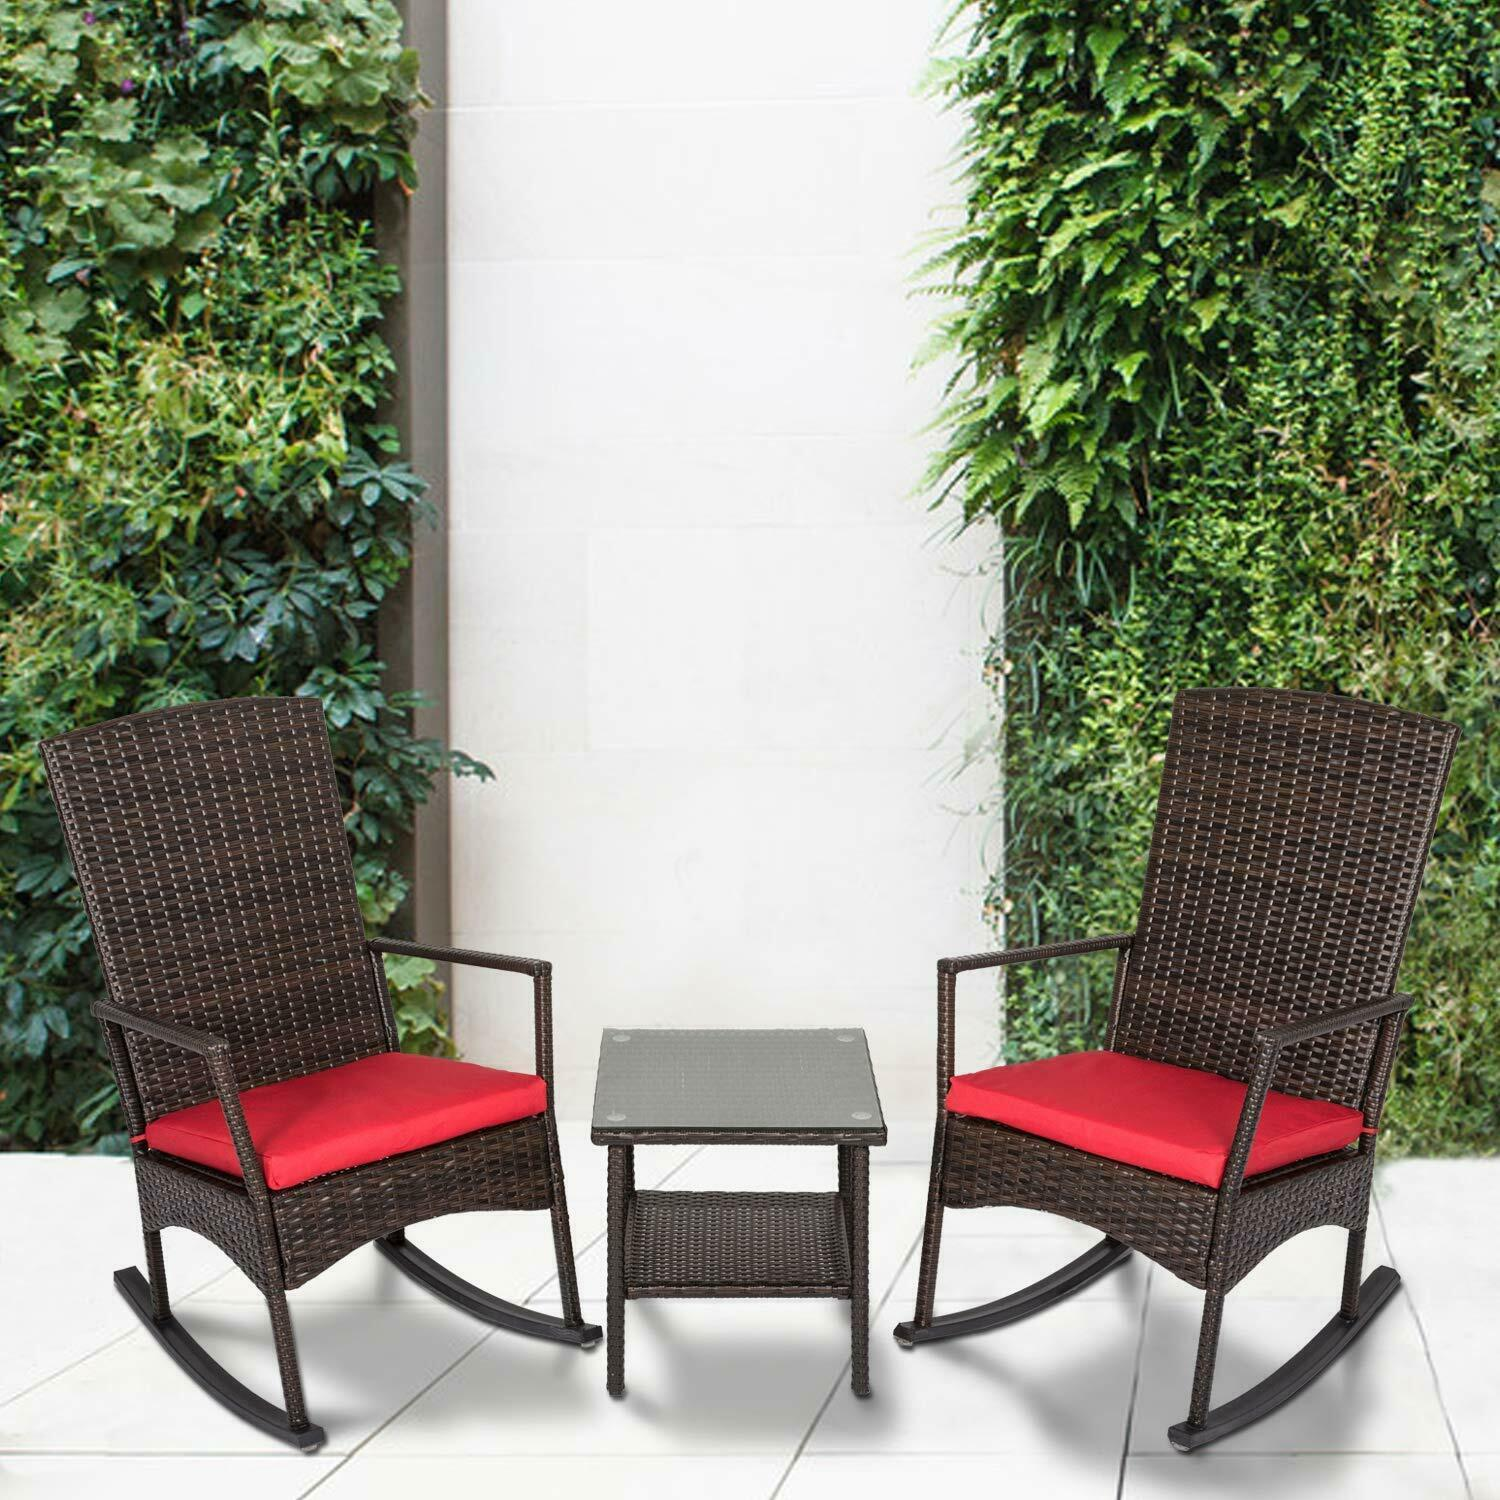 Garden Furniture - 3PCS Rattan Wicker Rocking Chair Set W/Cushions Patio Furniture Garden Yard Red